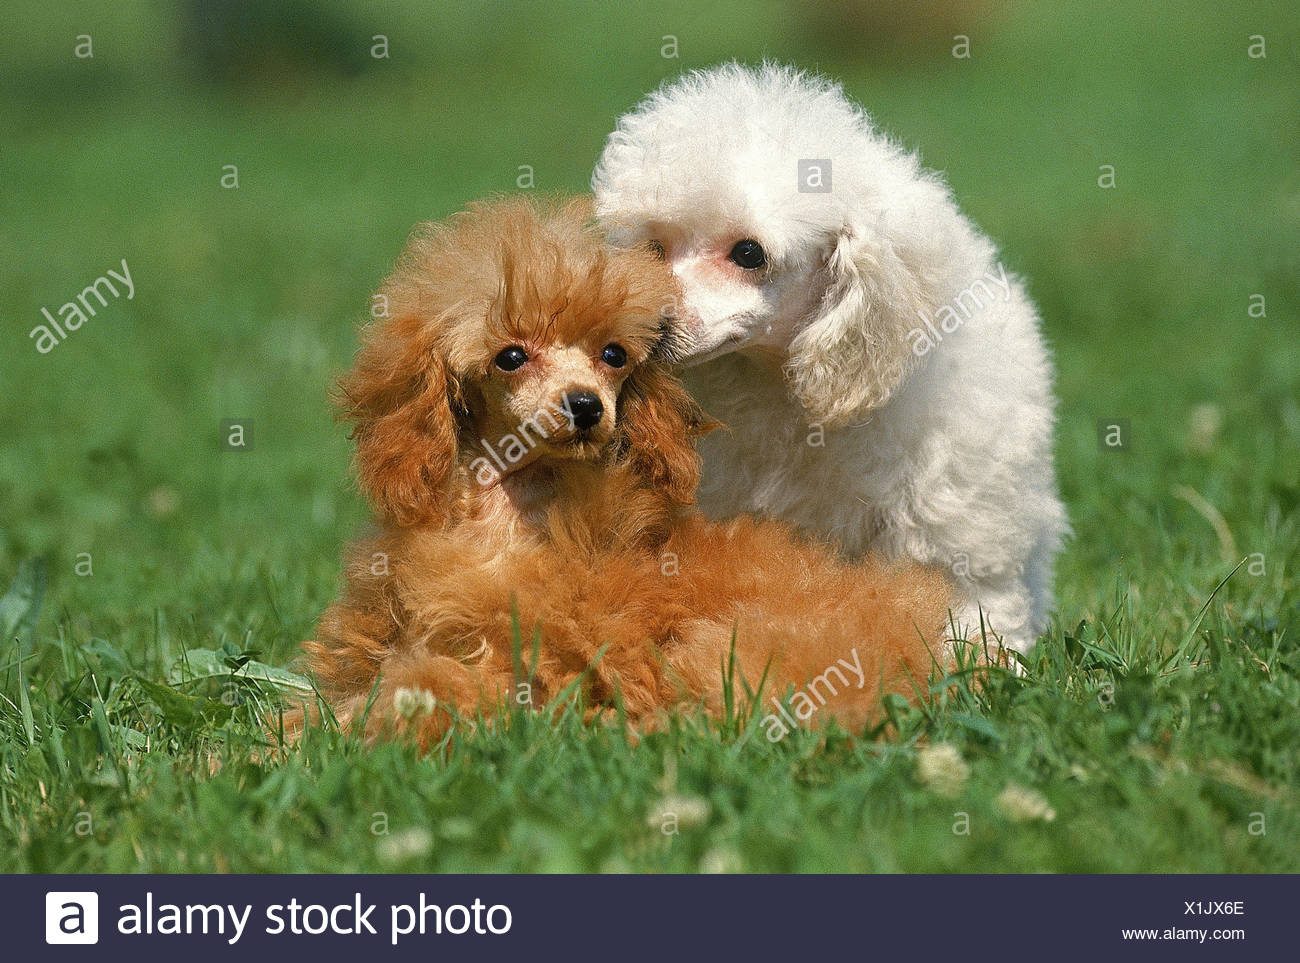 Apricot Toy Poodle Stock Photos & Apricot Toy Poodle Stock